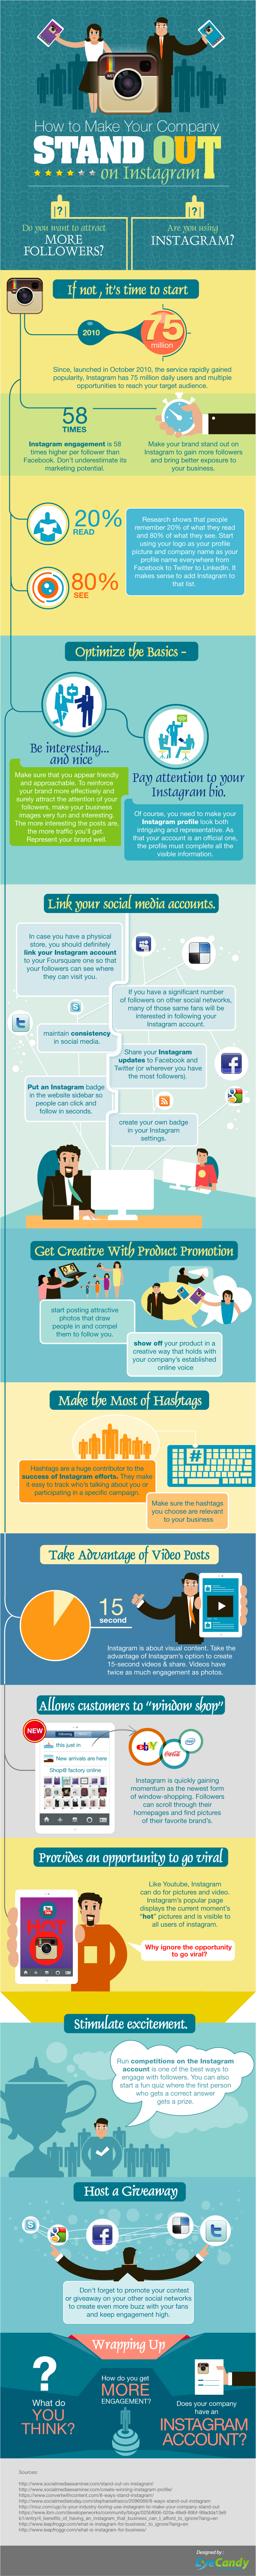 eyecandy infographic portfolio how to make your company stand out on instagram